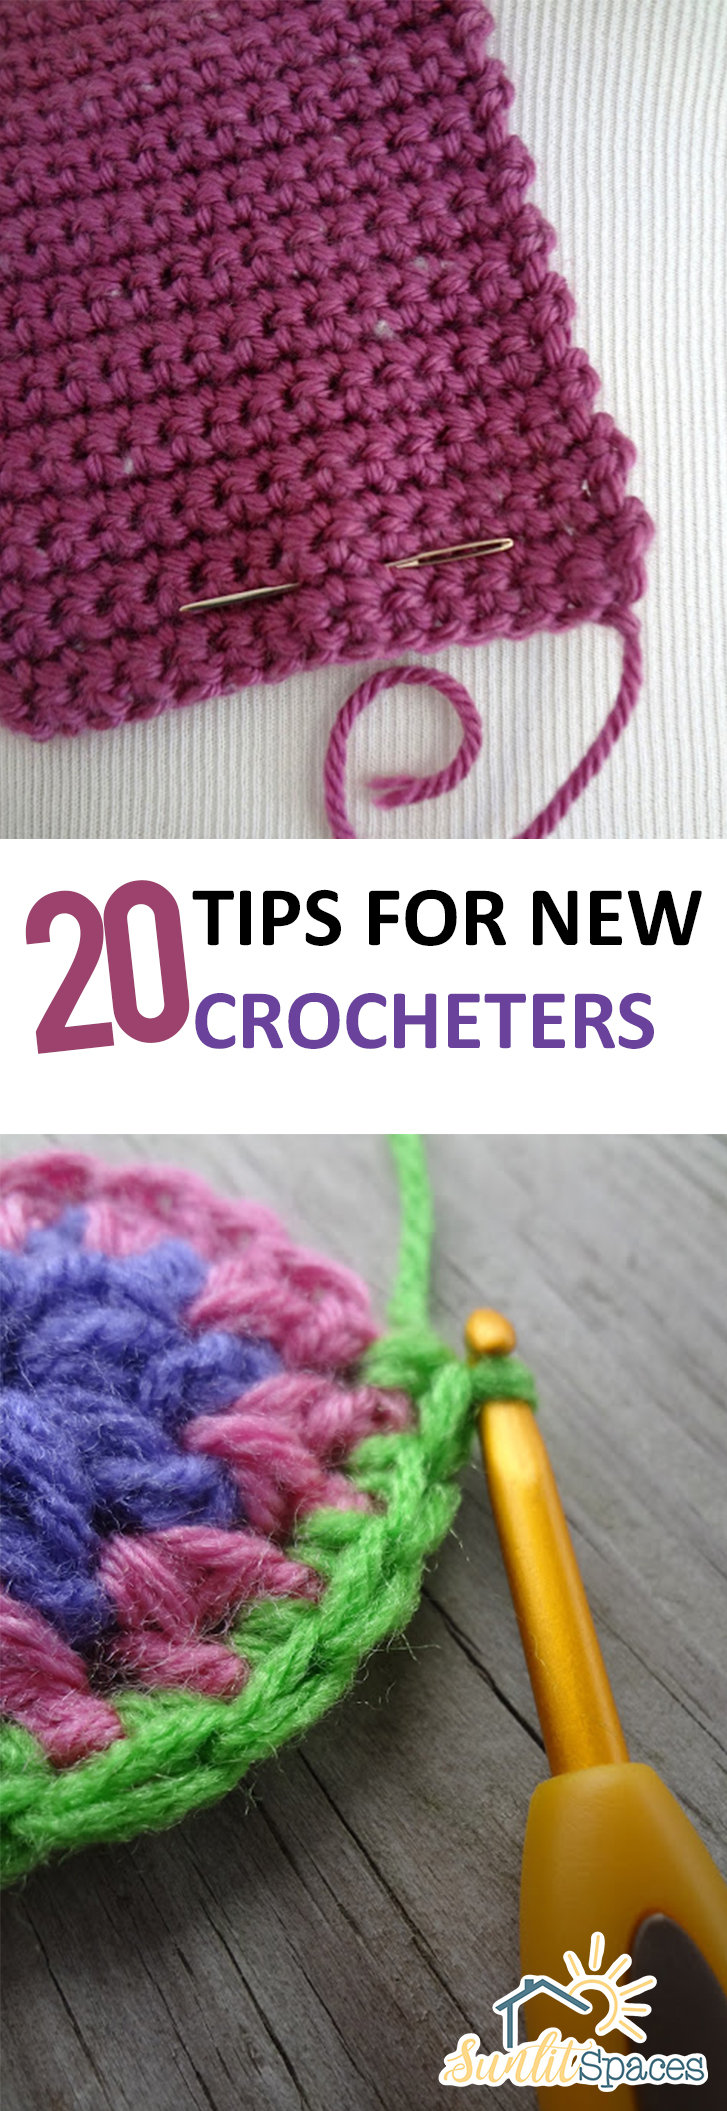 Crochet Tips, Crocheting Tips, How to Crochet, Learn How to Crochet, Crochet for Beginners, Craft, Crafting Tips and Tricks, Crafting Hacks, Easy Craft Tips, Crafting Hacks, Popular Pin